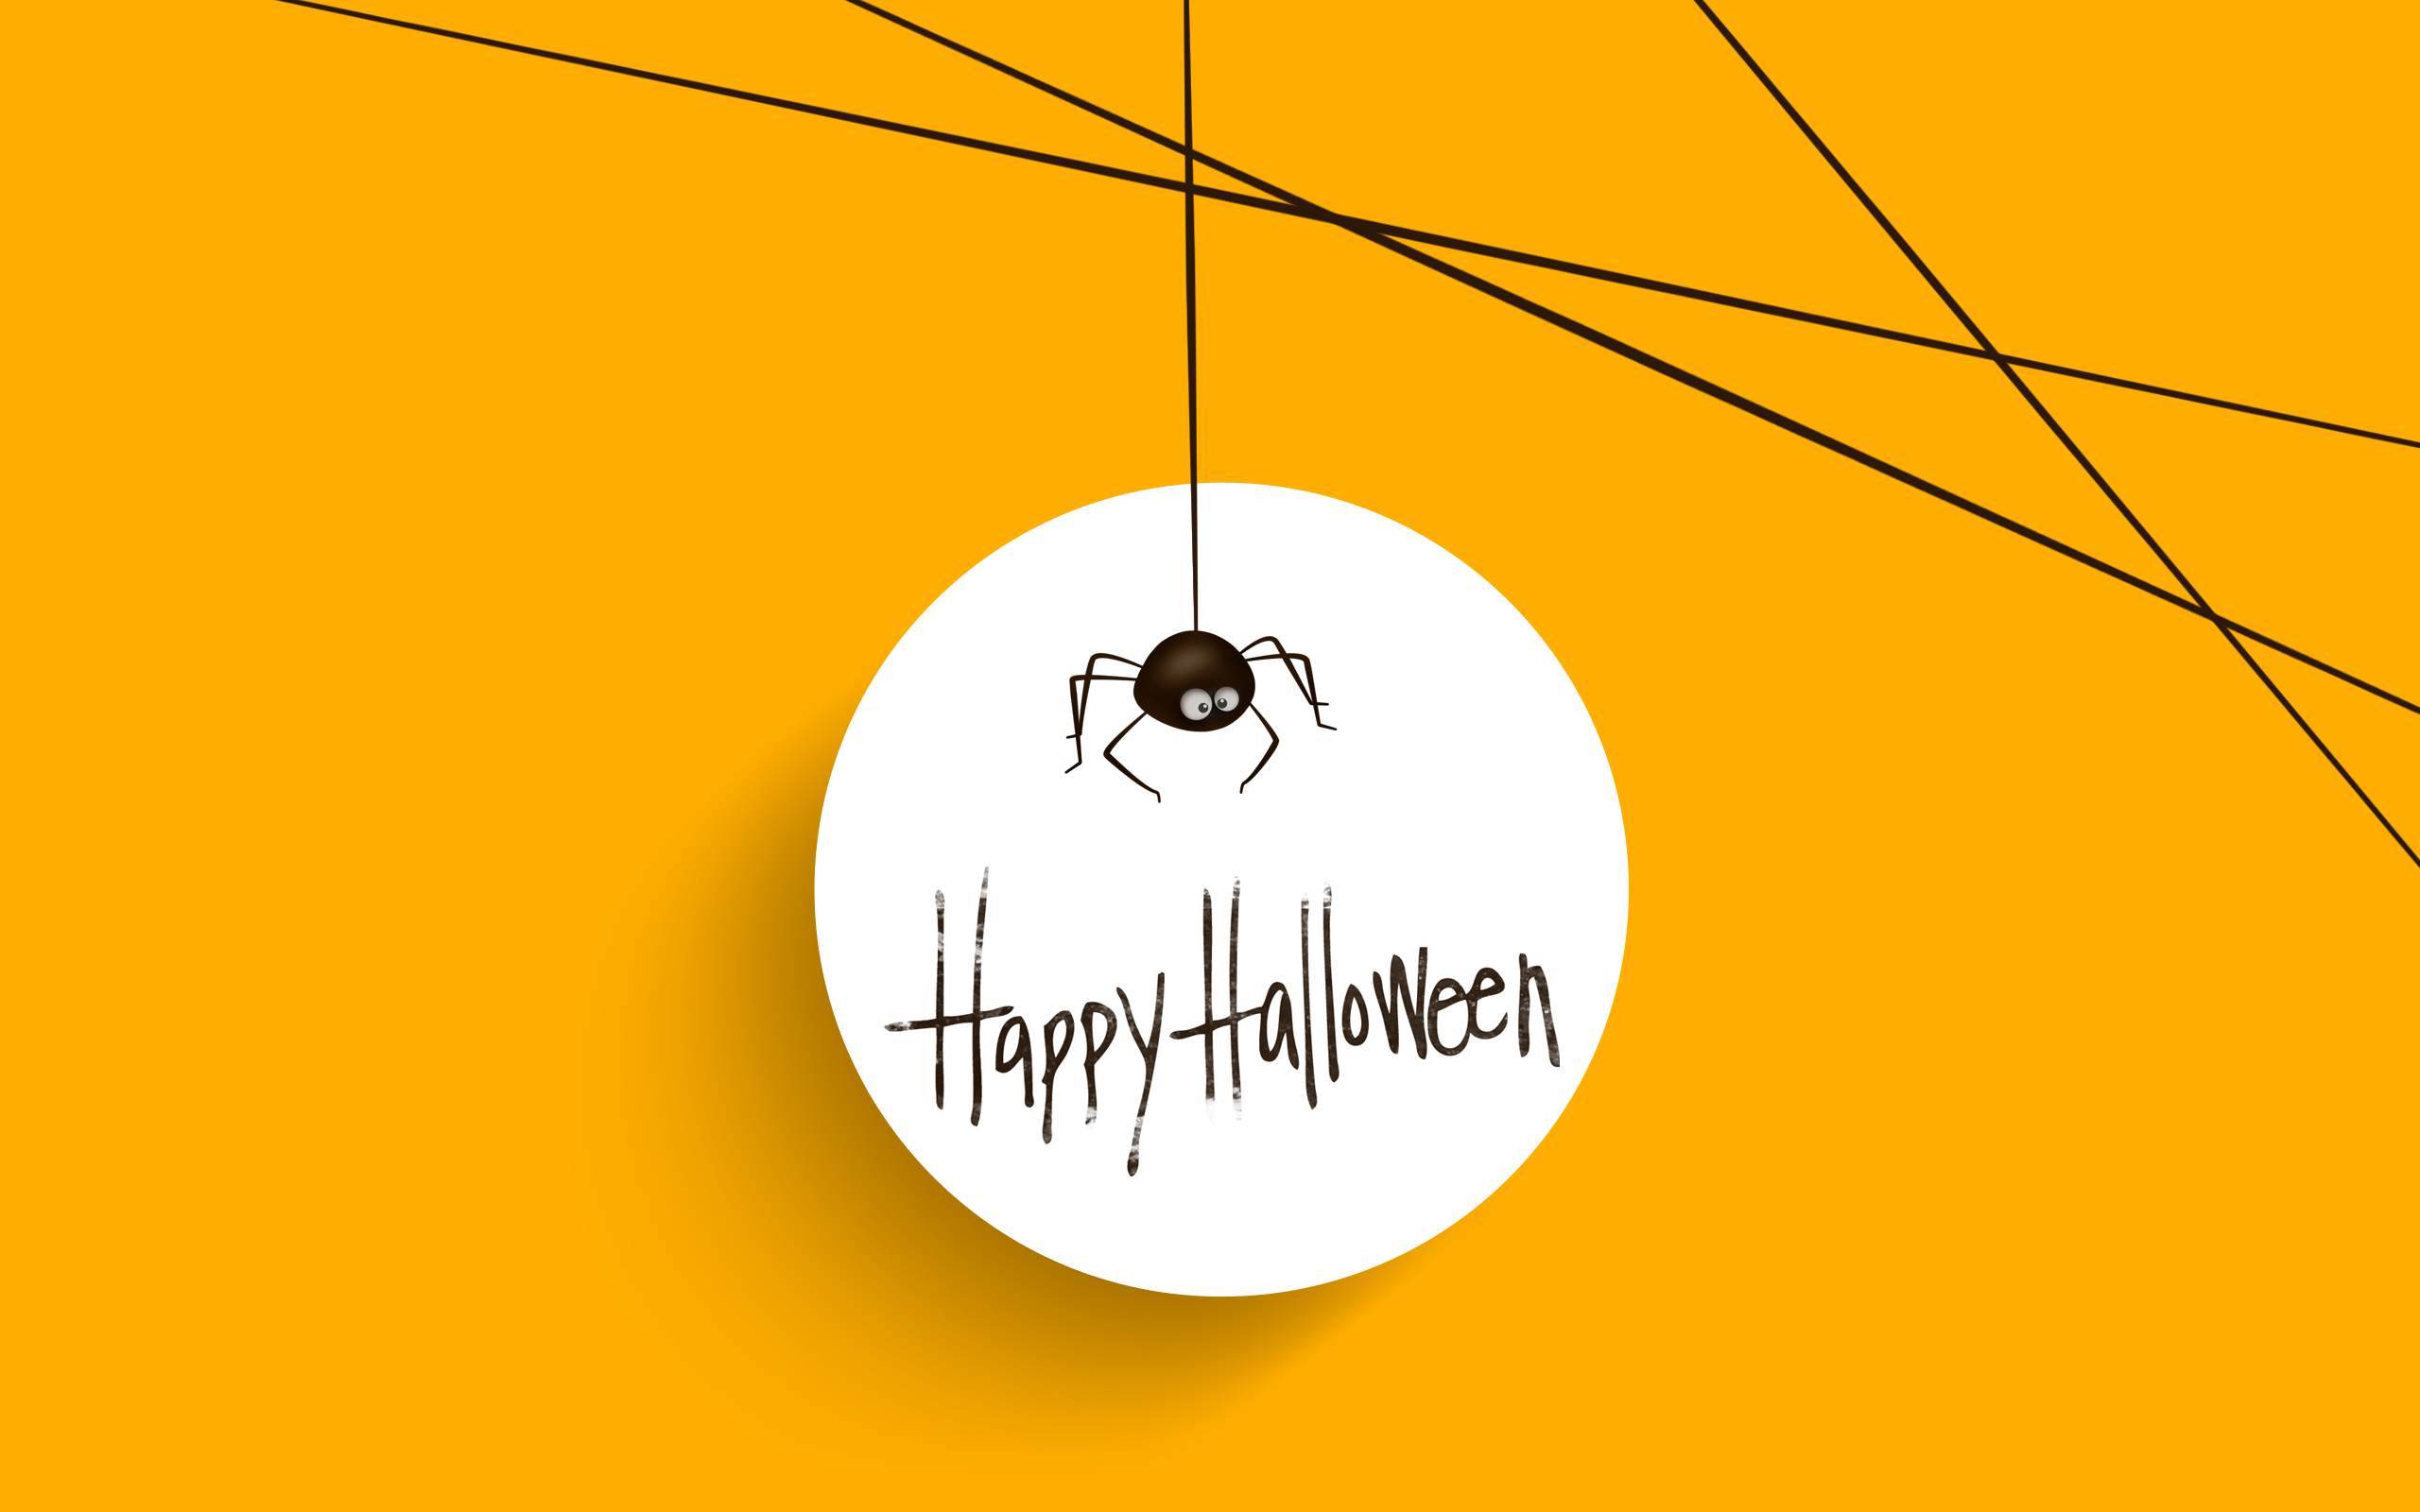 Halloween Wallpaper 2014 by Prince Pal